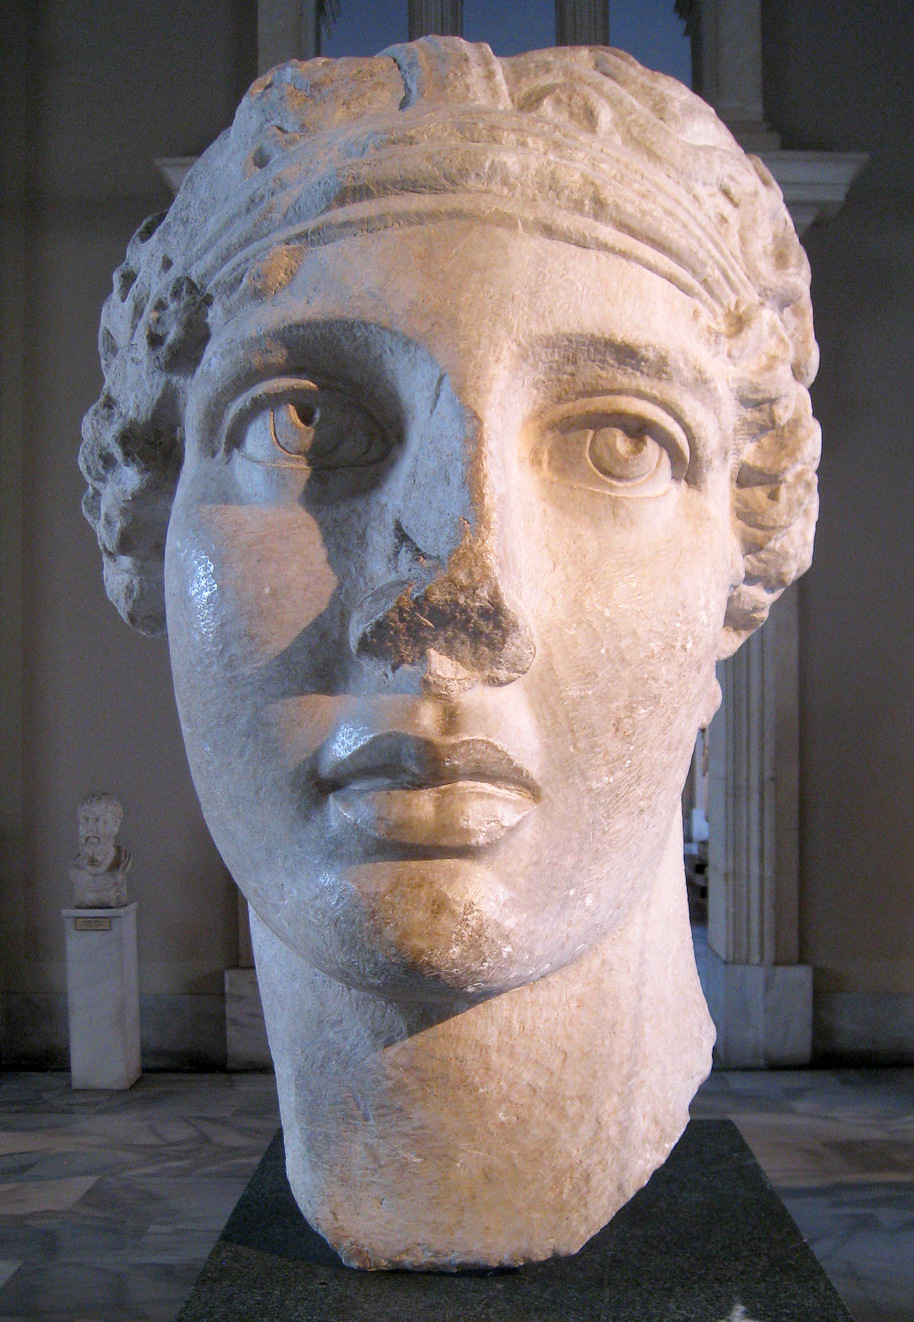 Marble bust of the ancient Greek poet Sappho. Roman copy of a Hellenistic original from Smyrna (Izmir), Turkey. Image credit: Wikimedia Commons.